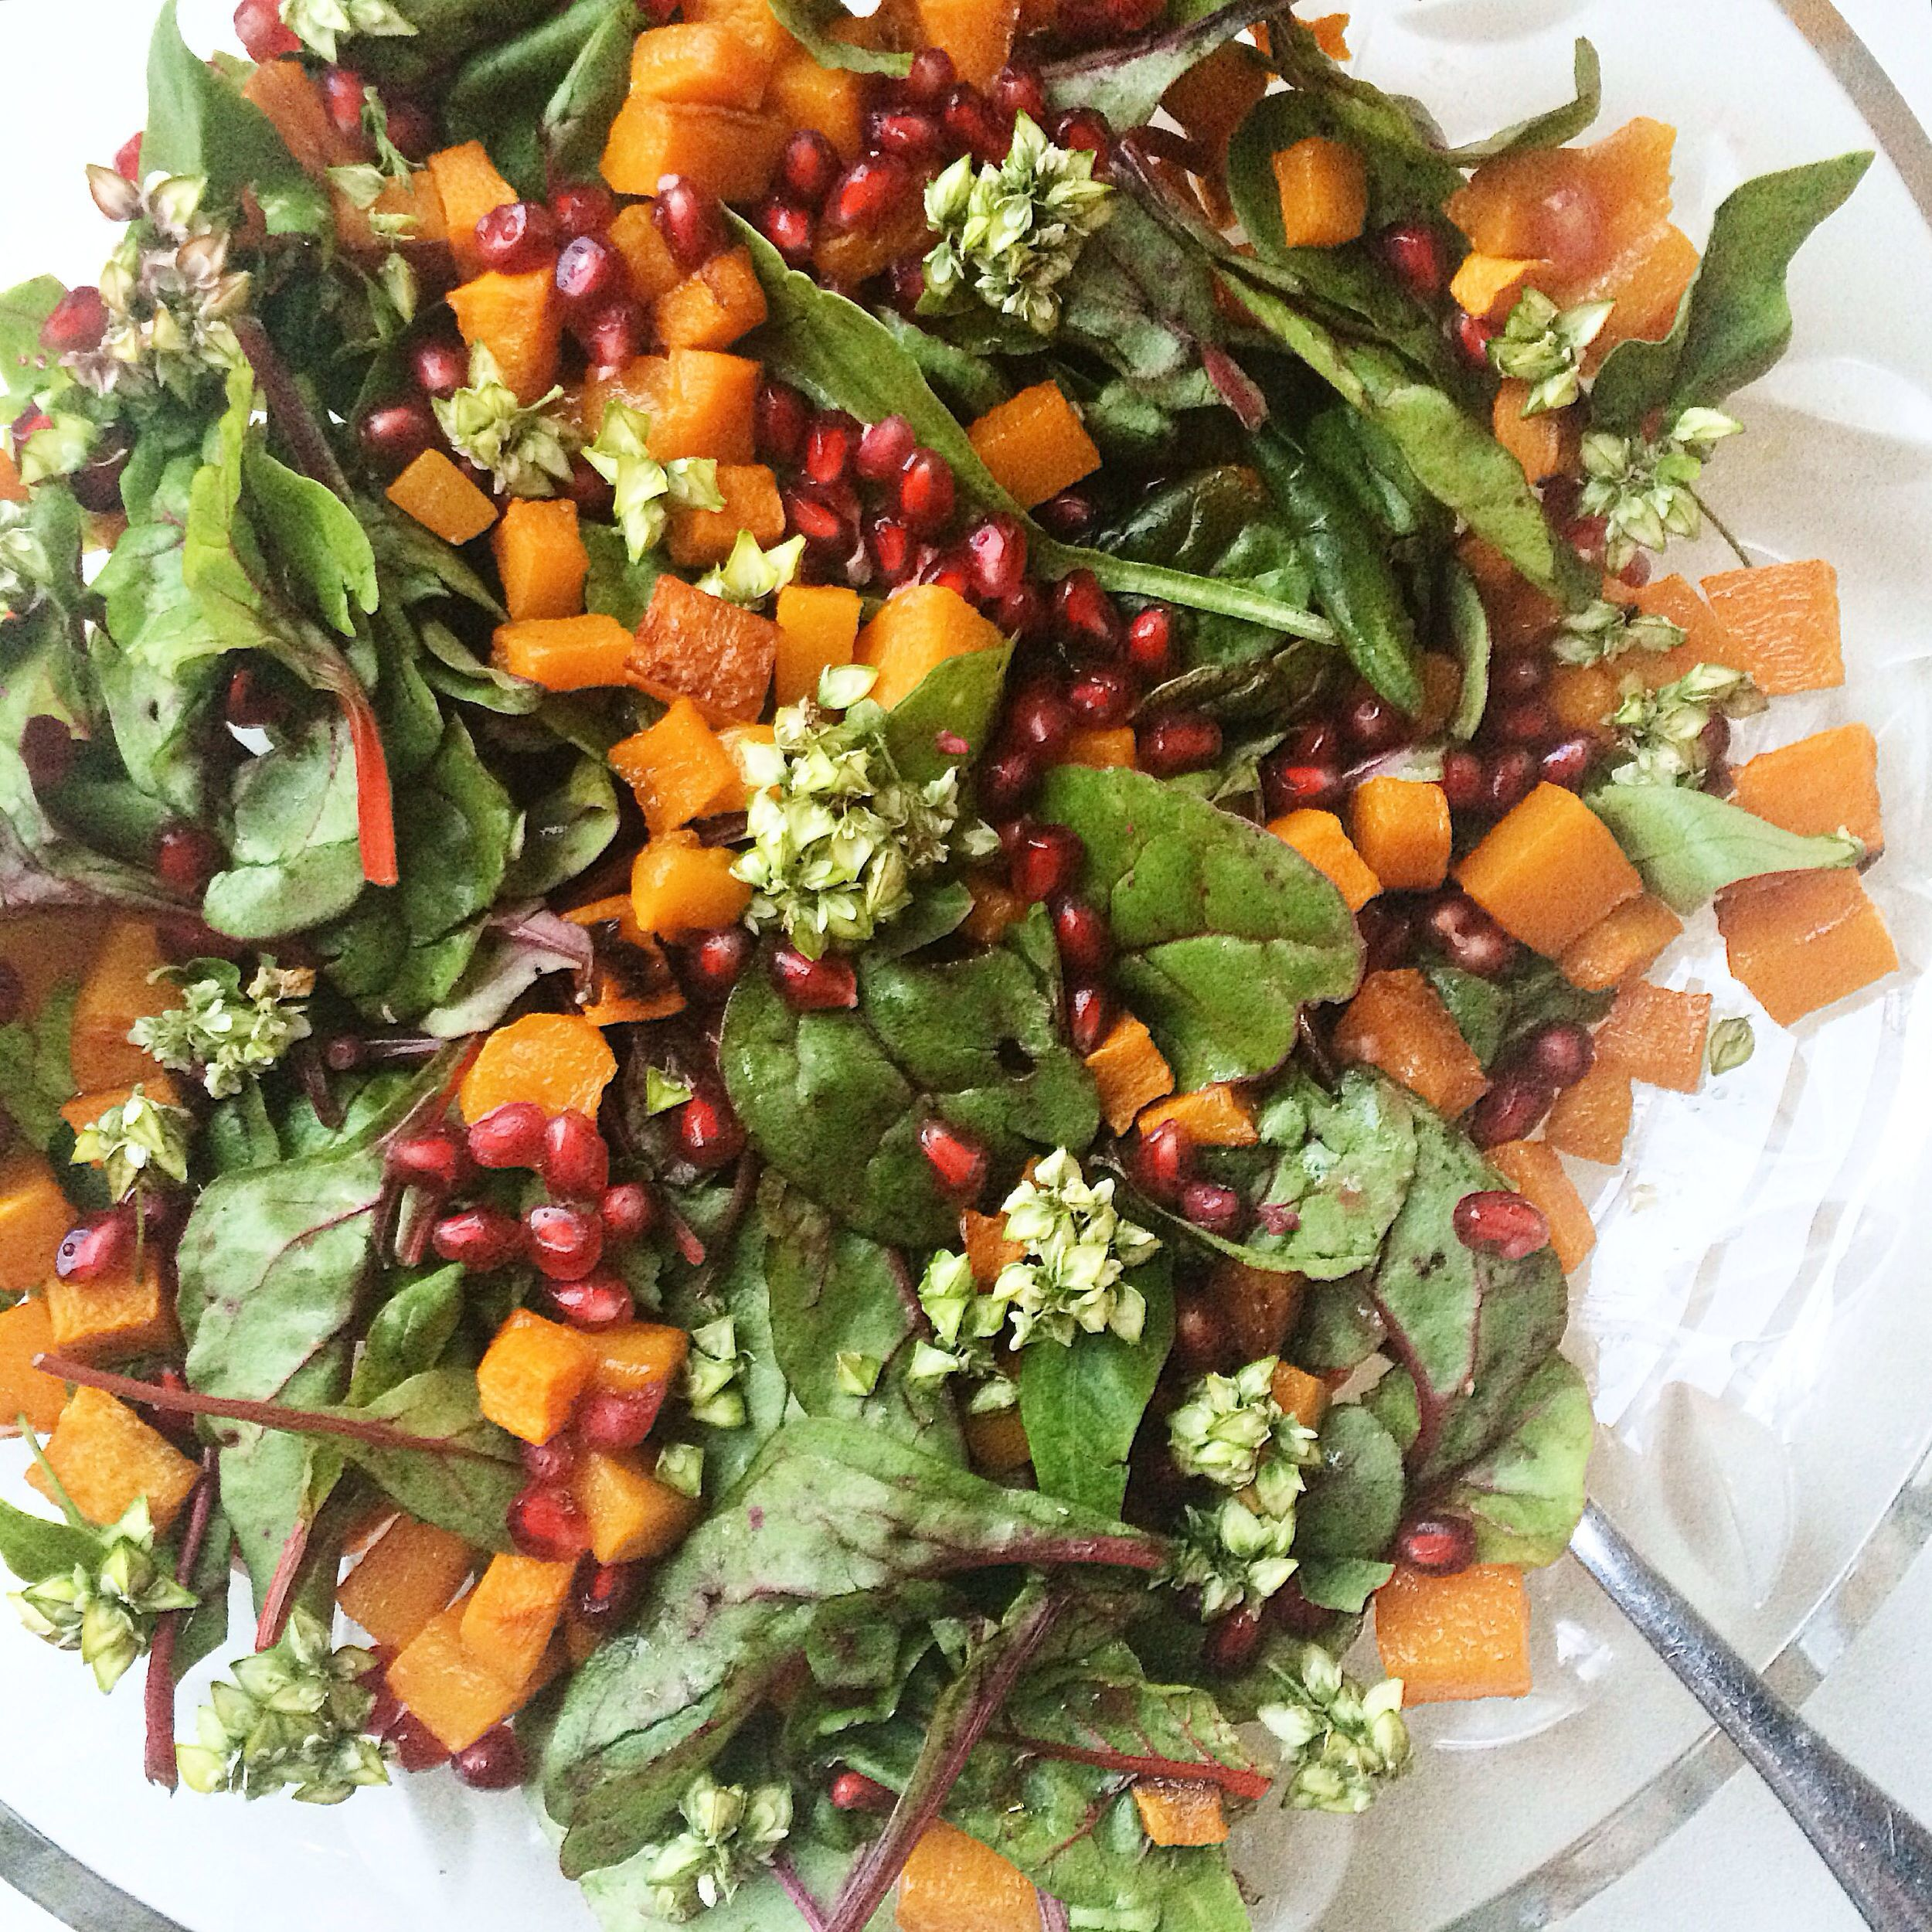 Roasted butternut squash salad Inspired by Edible SF